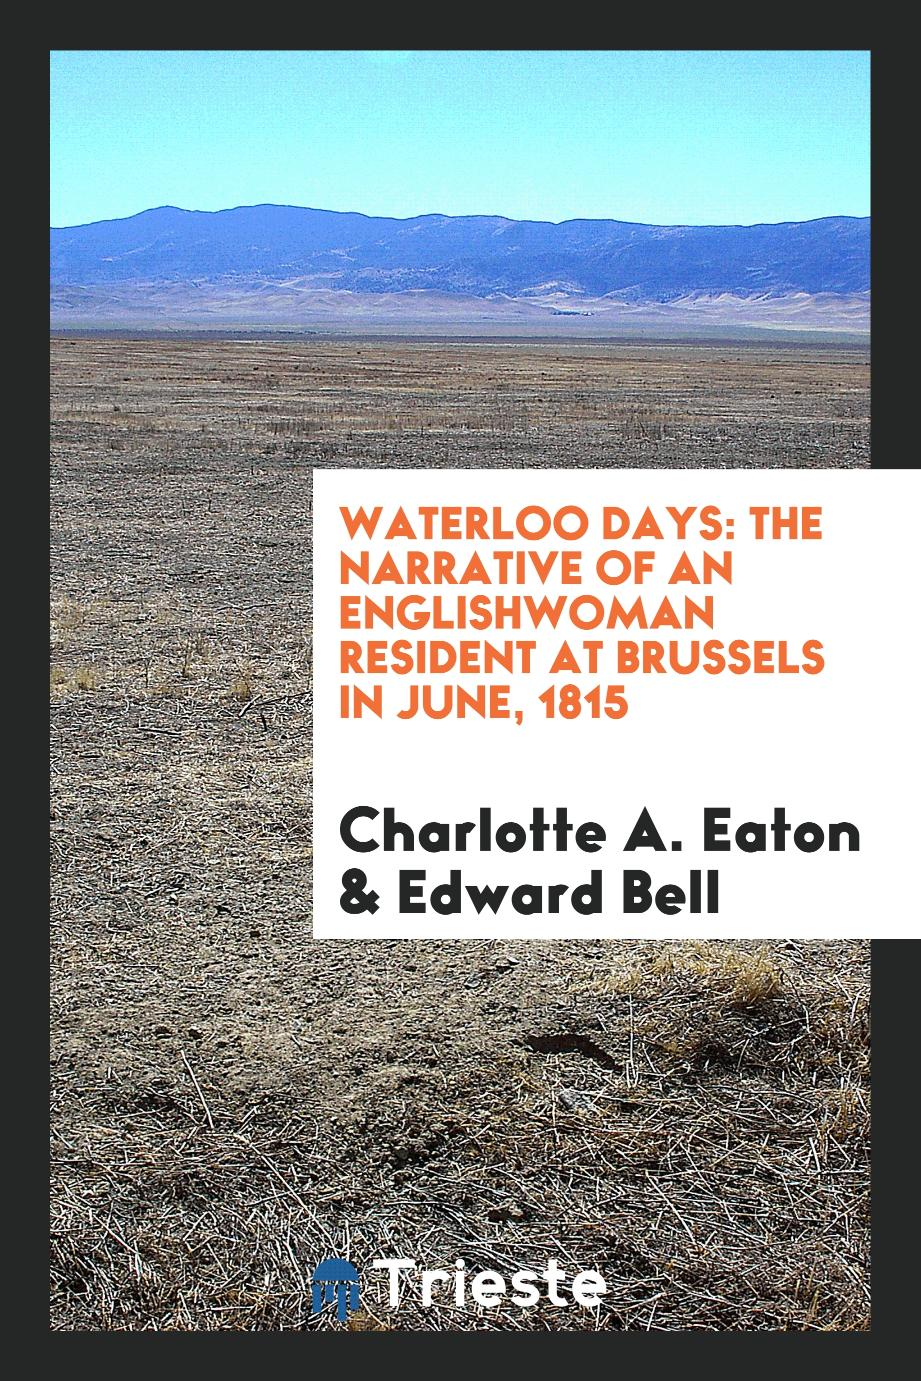 Charlotte A. Eaton, Edward Bell - Waterloo days: the narrative of an Englishwoman resident at Brussels in June, 1815